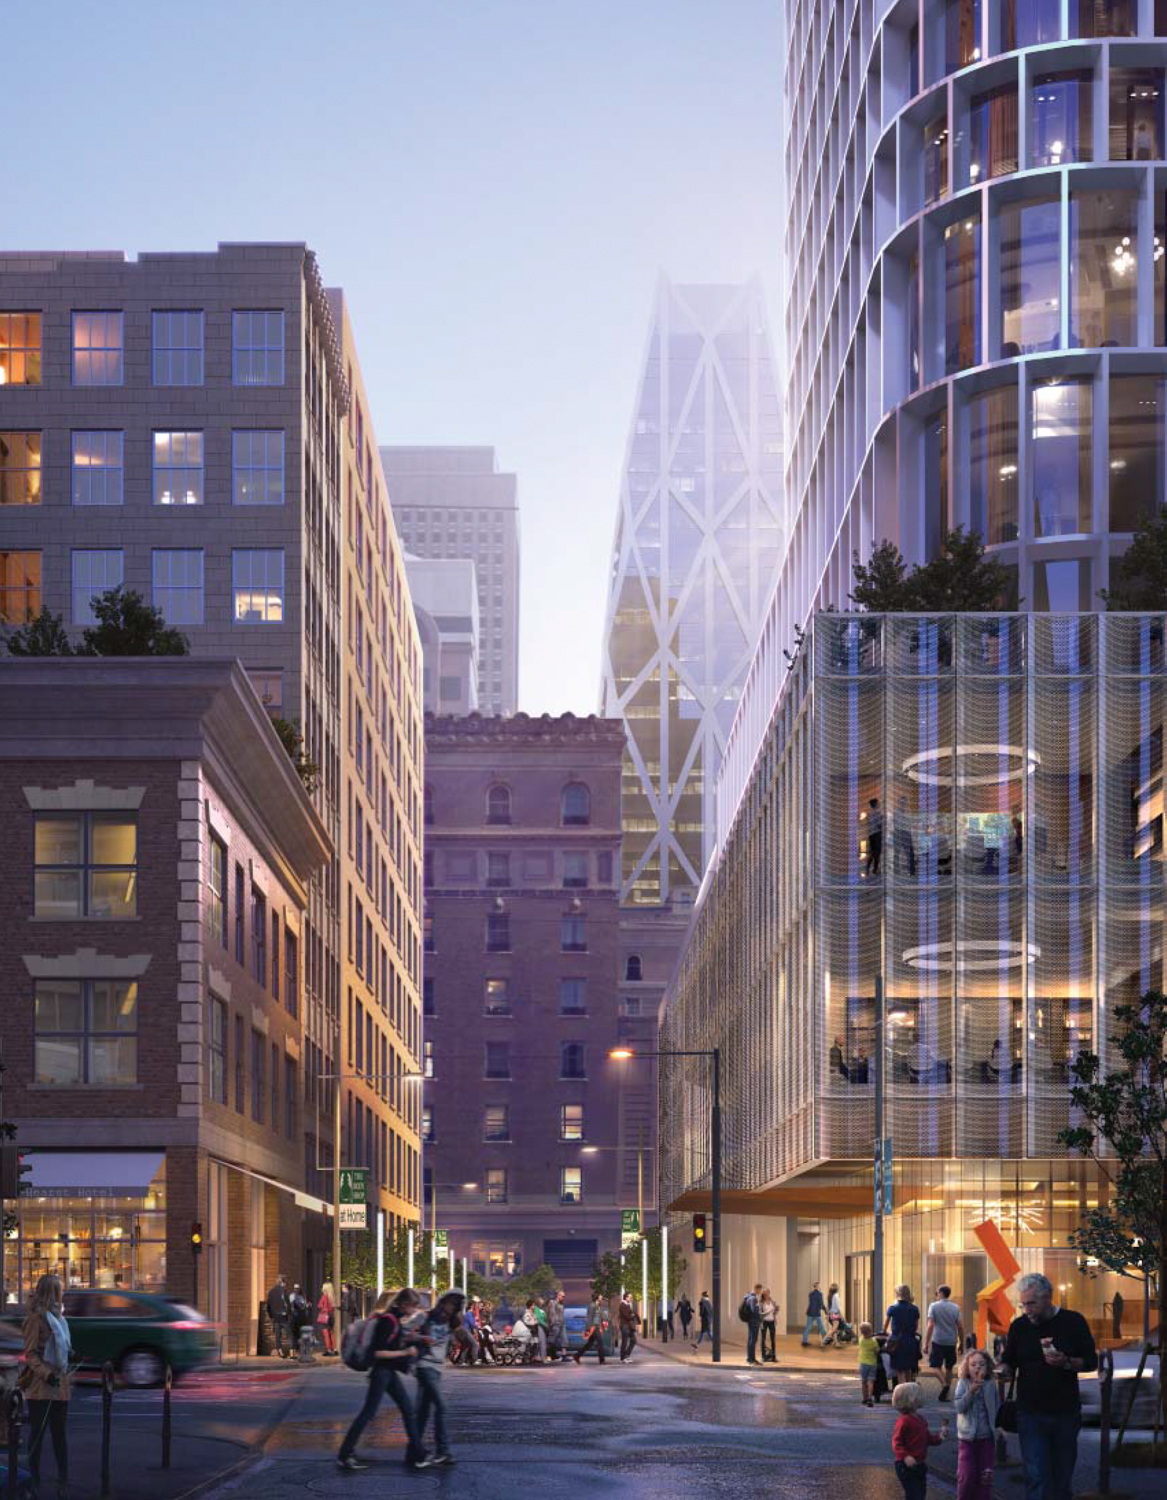 45-53 Third Street podium with the now-stalled Oceanwide Center proposal, designed by Norman Foster & Partners, illustrated in the background, rendering by SOM